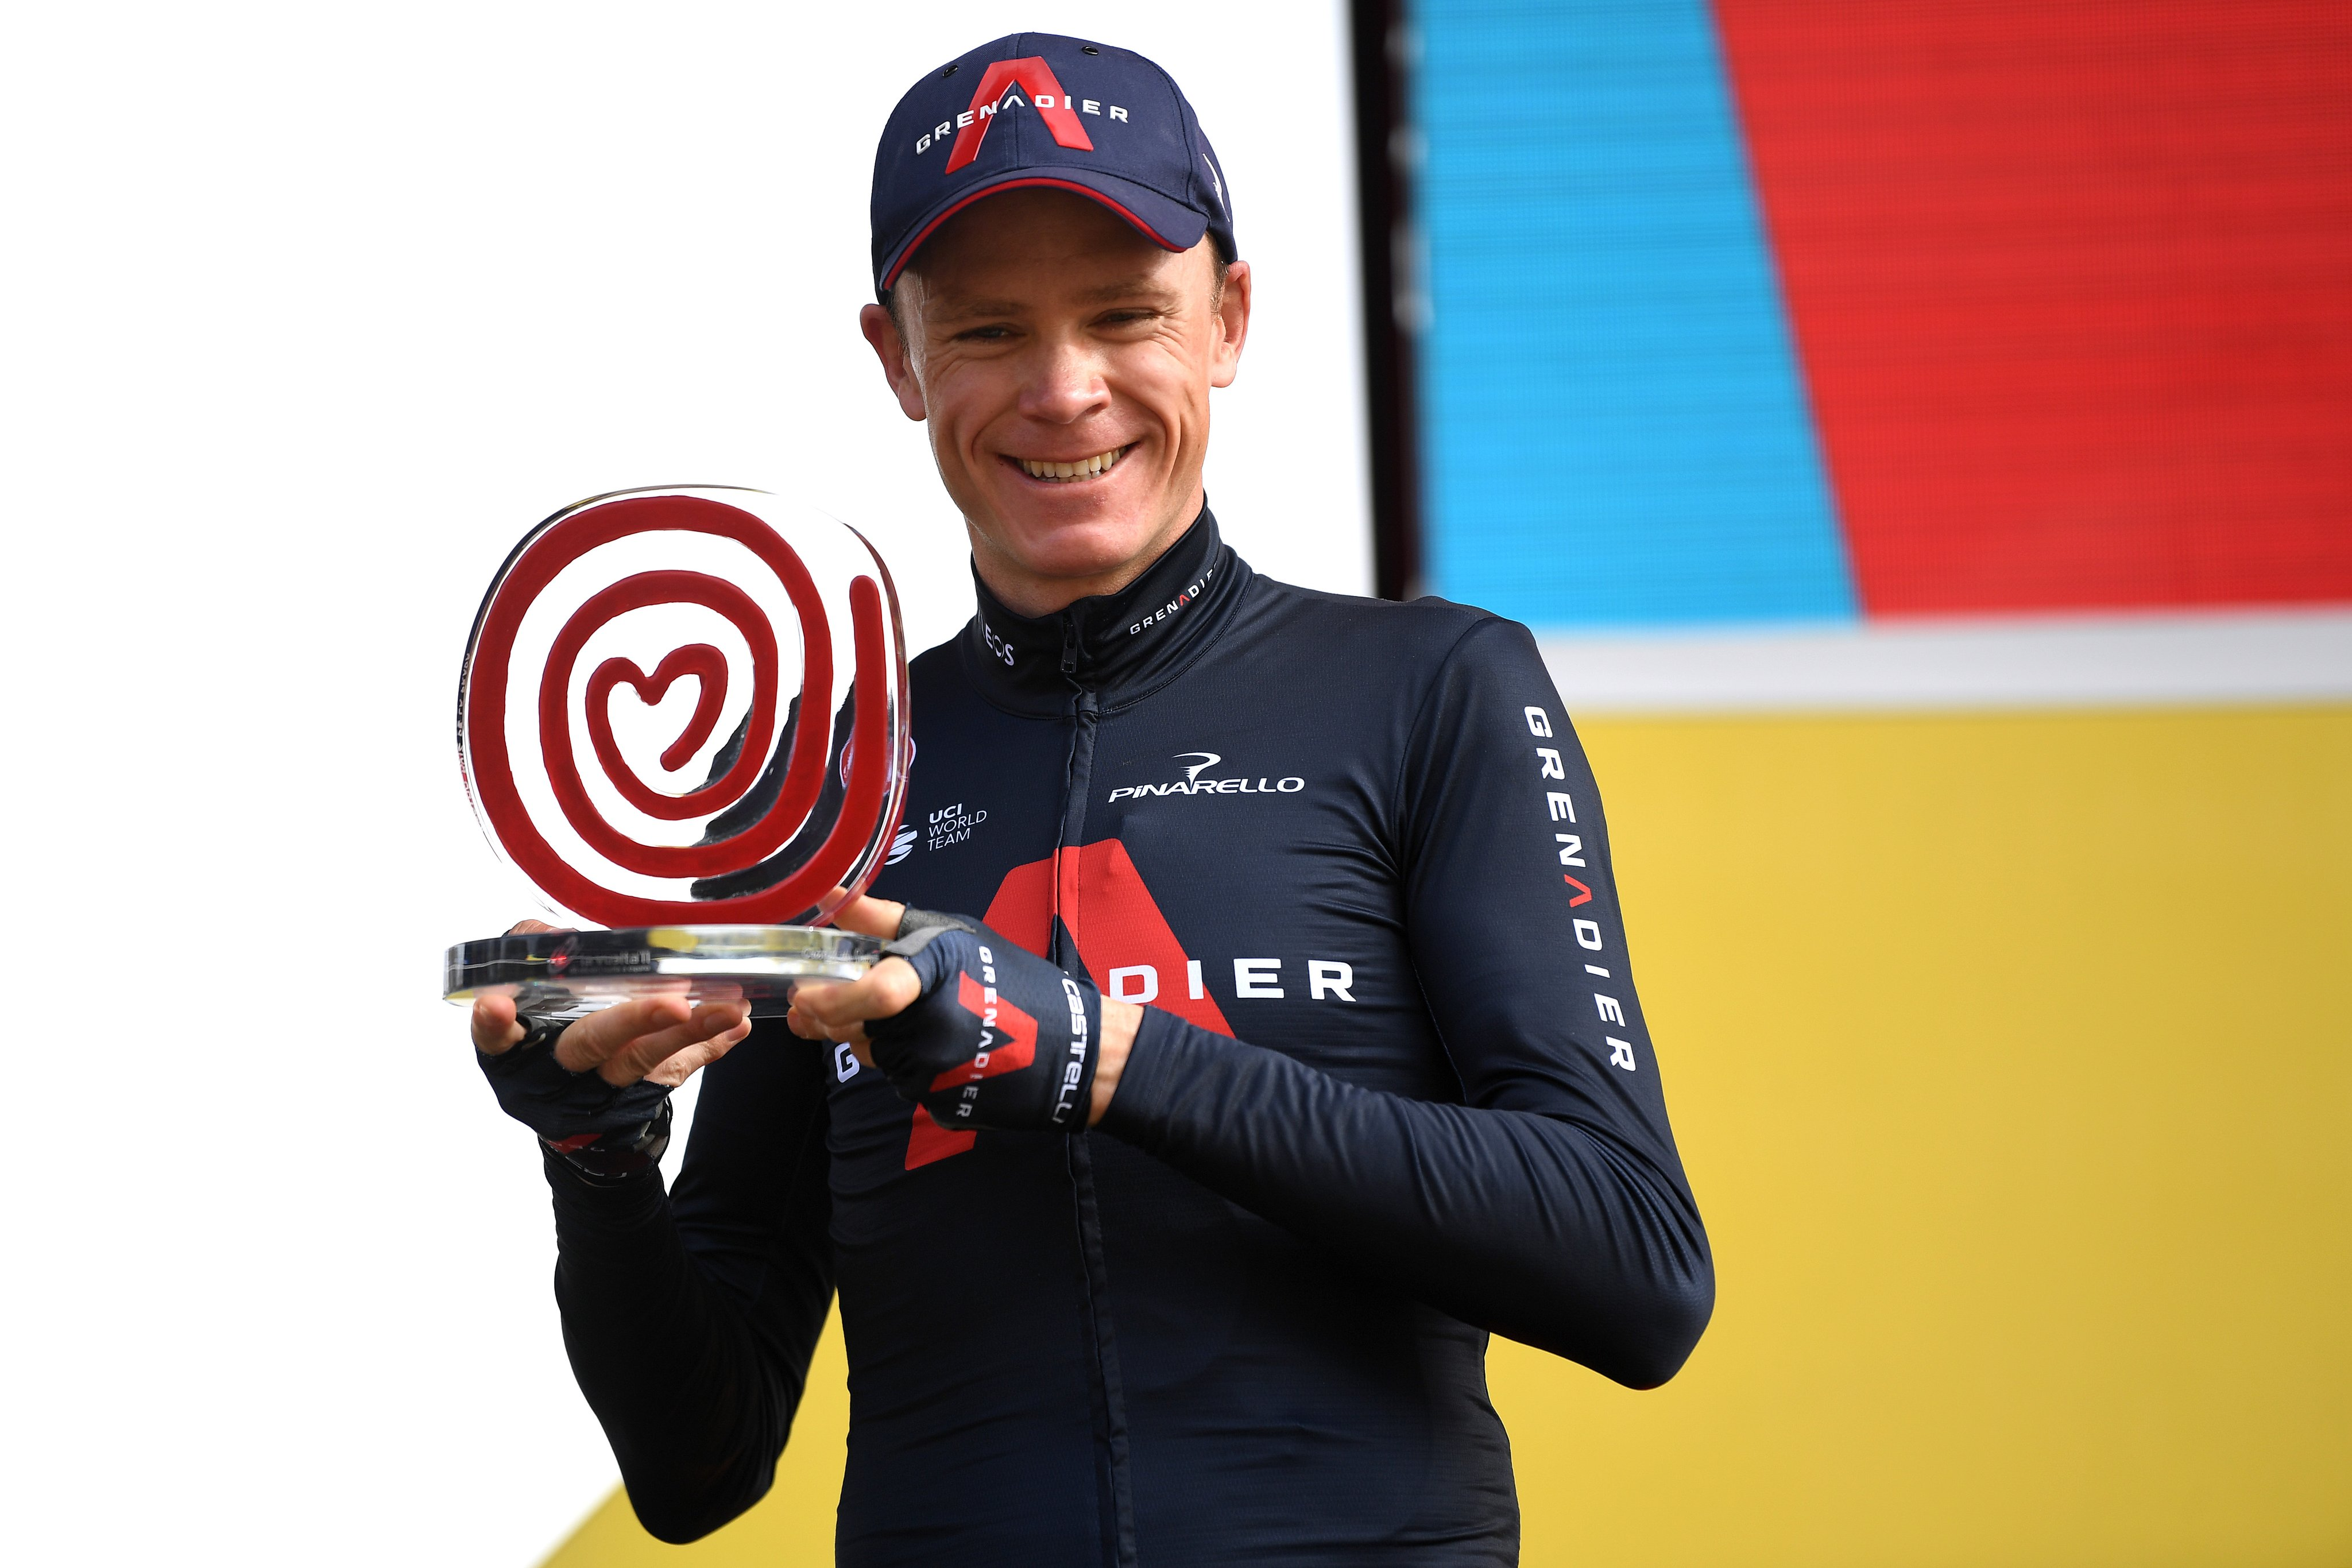 cycling vuelta 2020 froome trophy